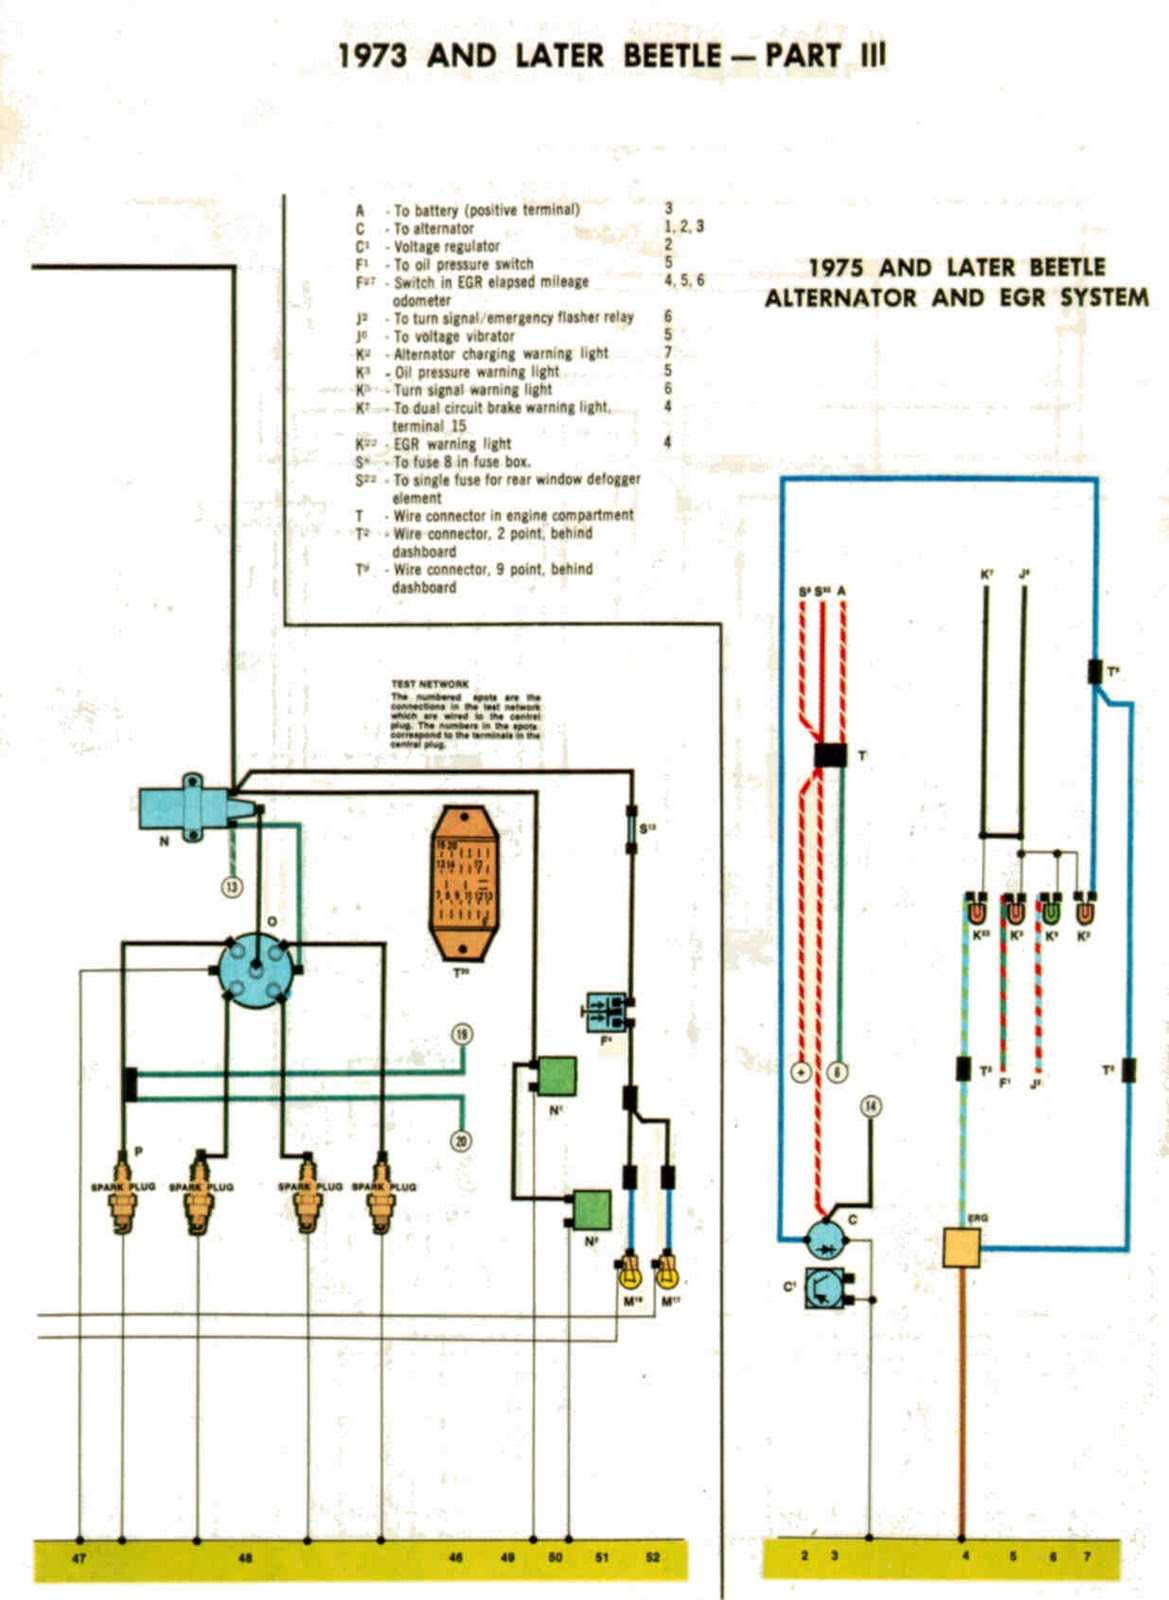 wiring diagrams galleries 1973 vw super beetle wiring diagram 1973 vw beetle wiring diagram [ 1169 x 1600 Pixel ]